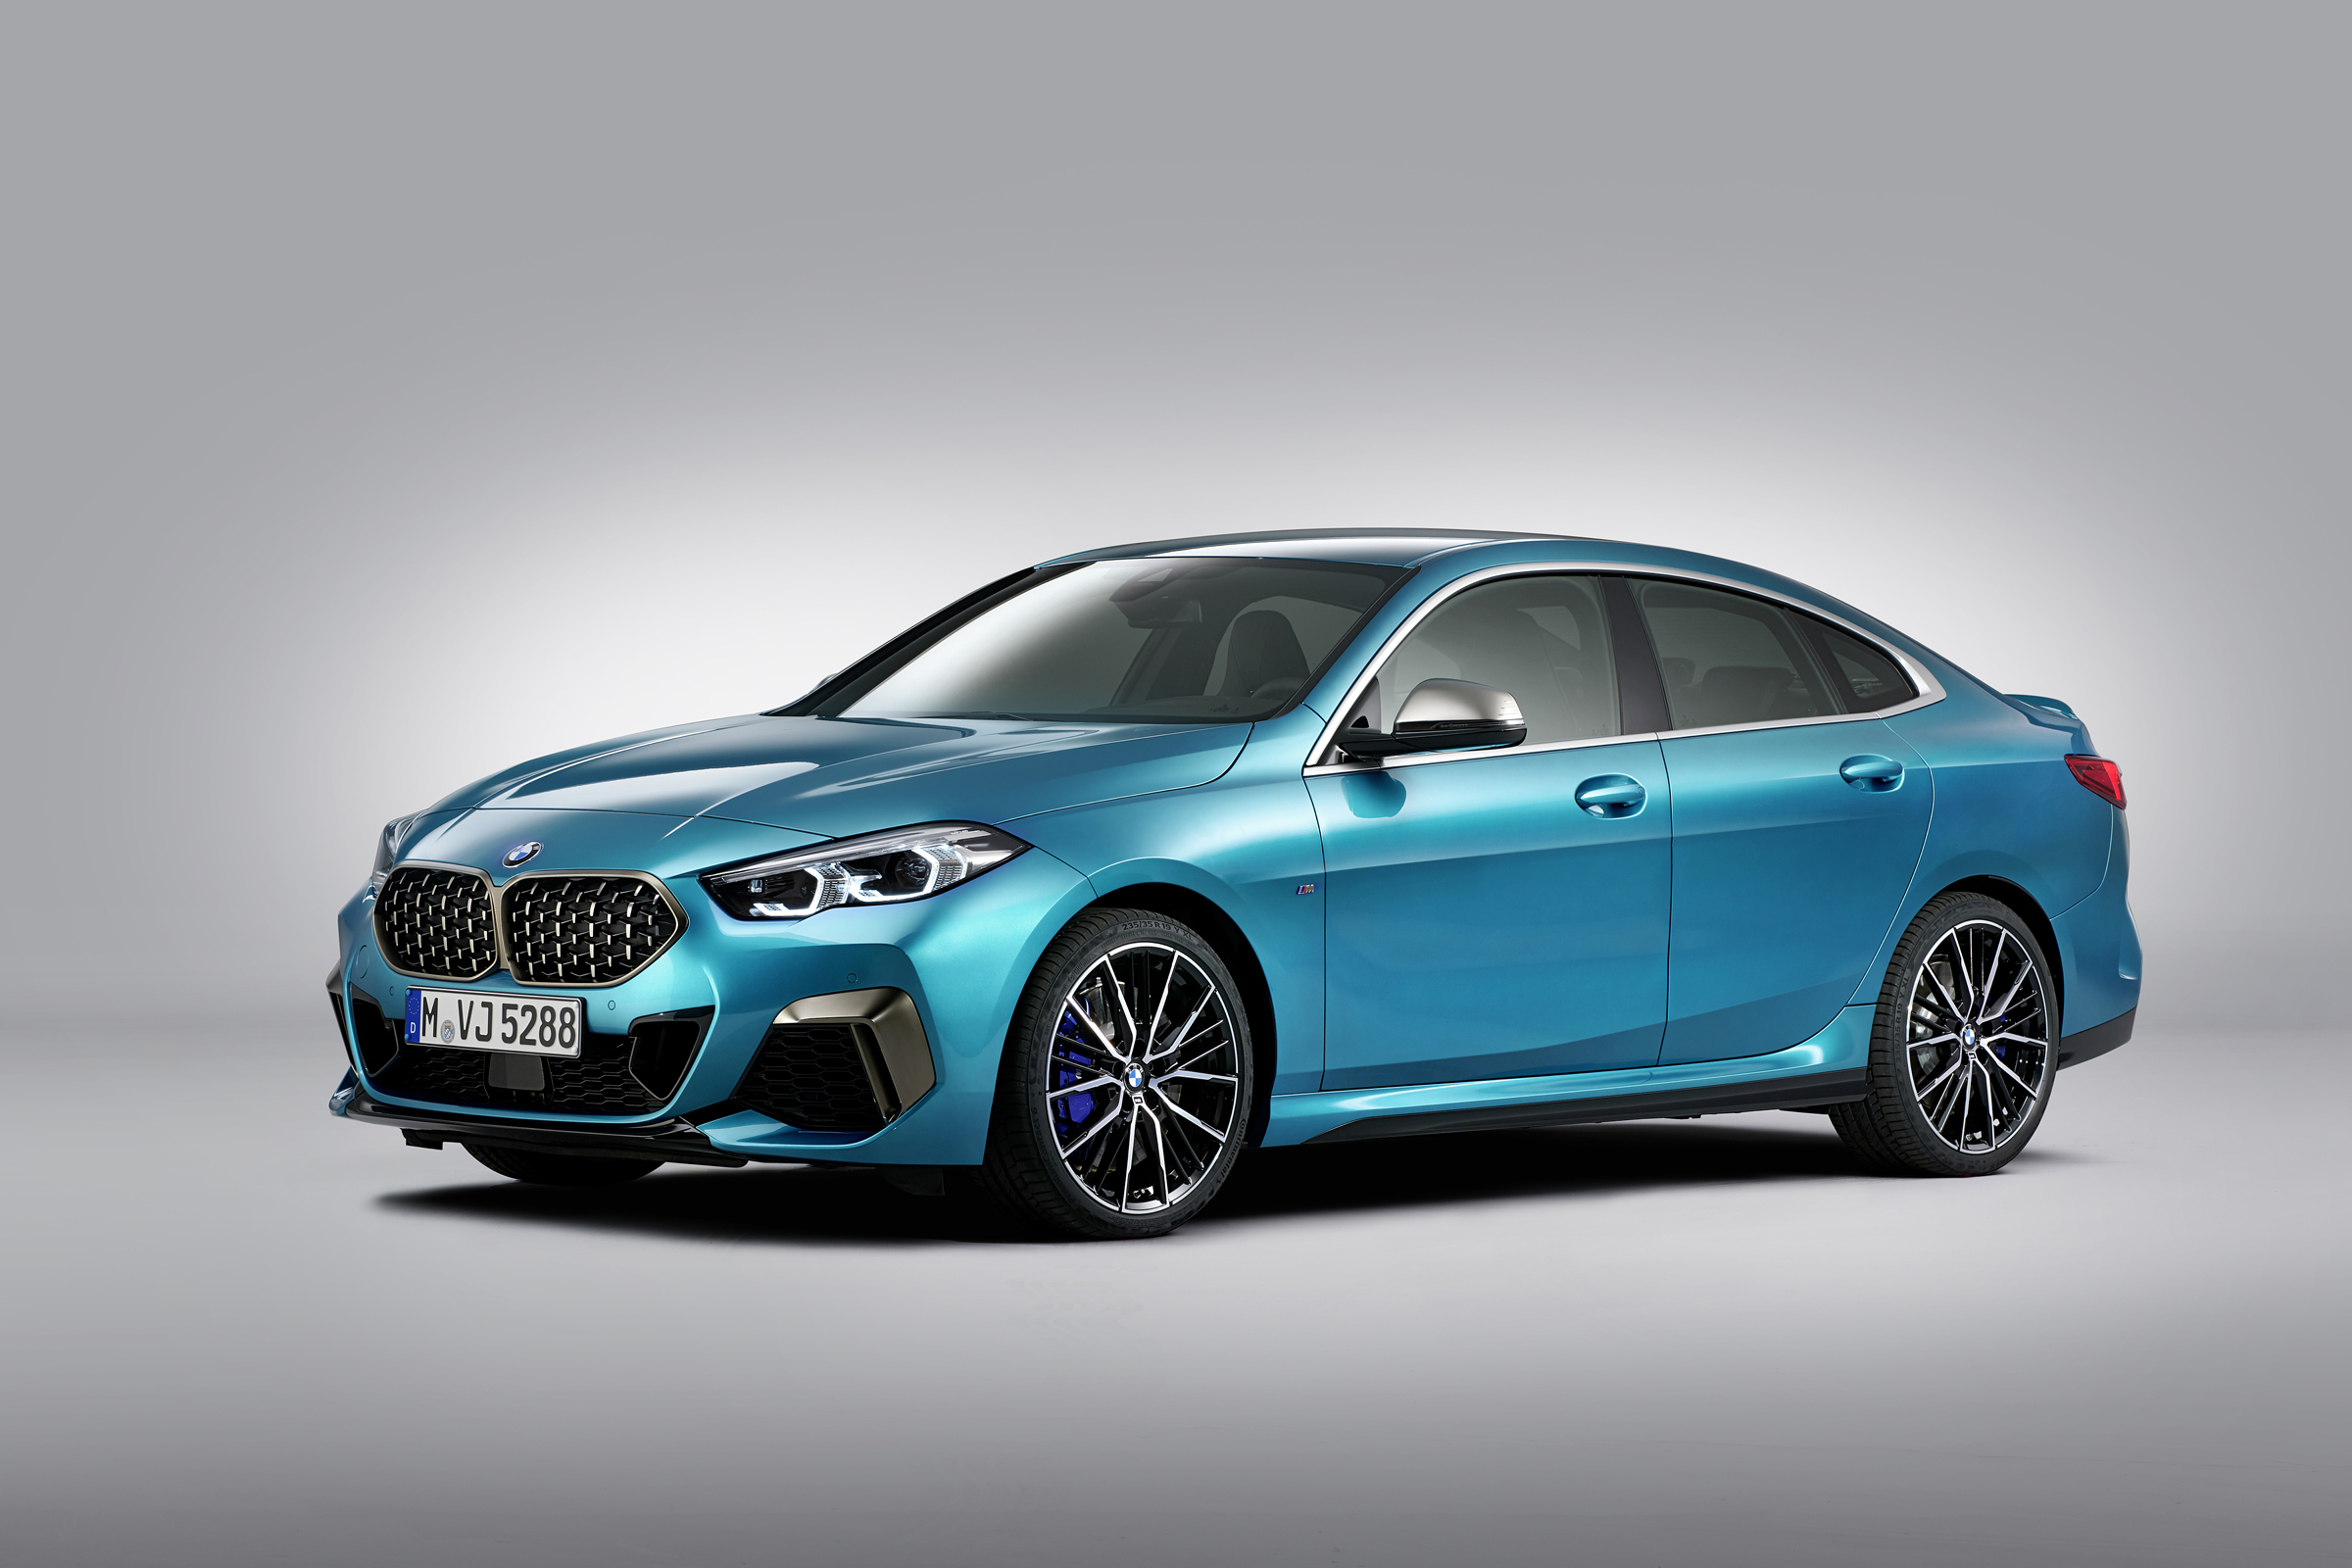 2020 Bmw 2 Series Gran Coupe Pricing And Specs Confirmed Carbuyer